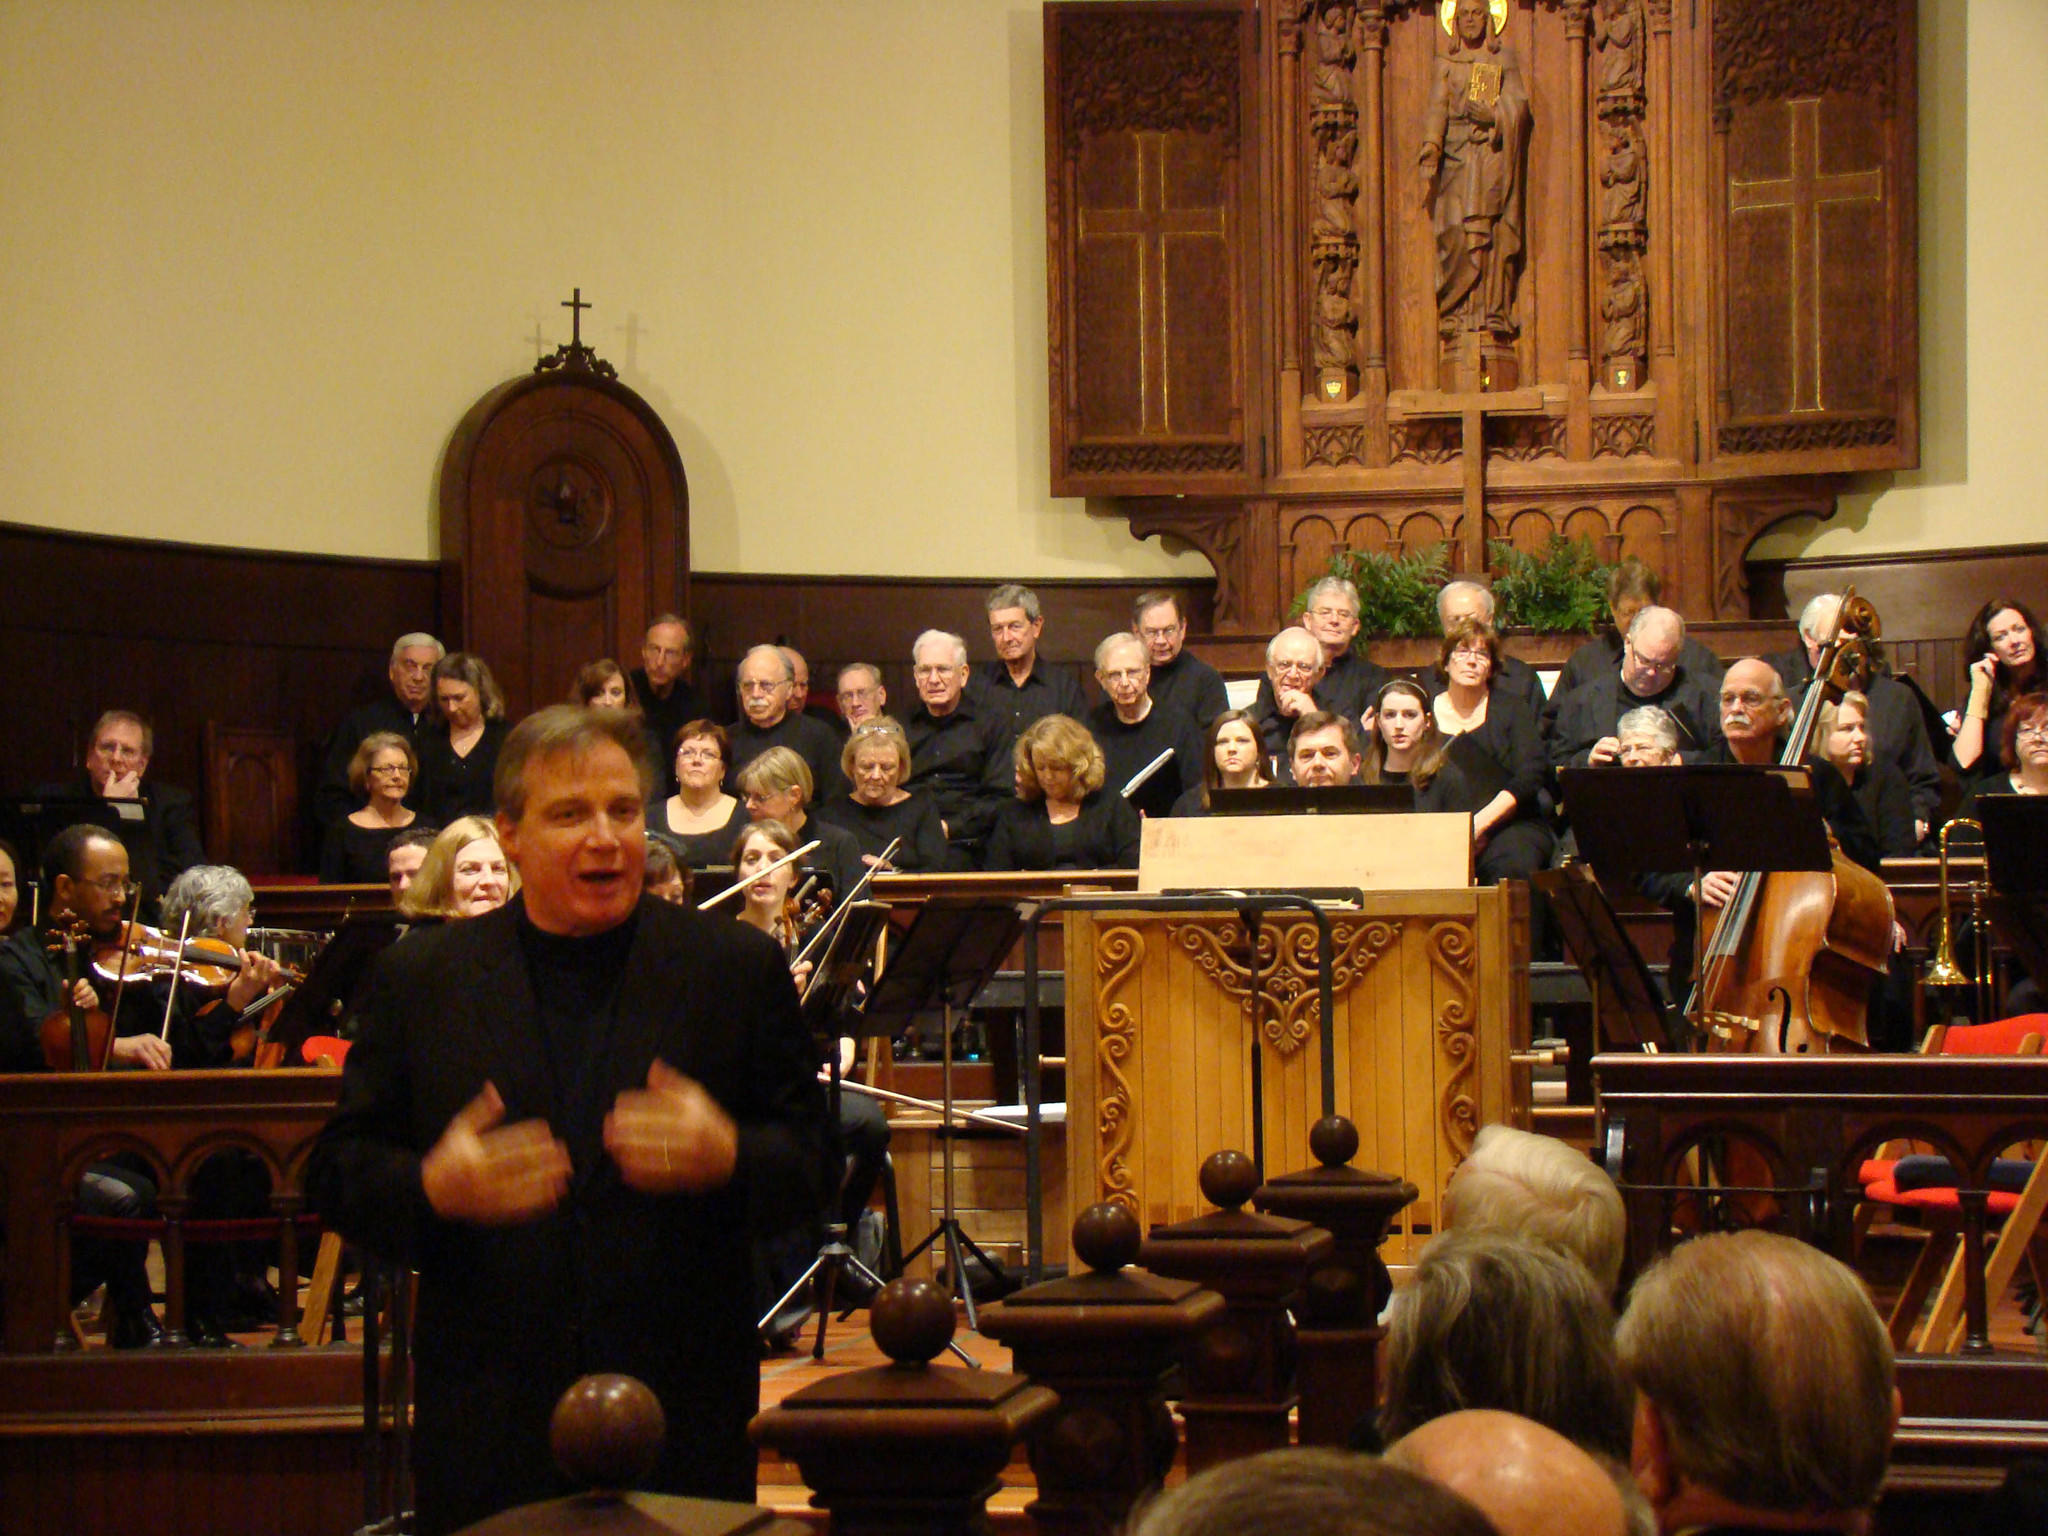 "Director and conductor J. Ernest Green talks with the audience prior to the recent Live Arts Maryland concert at St. Anne's Episcopal Church in Annapolis. The concert brought together the Annapolis Chorale Chamber Chorus, Annapolis Chamber Orchestra and soloists. The next concert at St. Annes concert will be ""The Spirit Soars: Music of the Russian and Eastern Traditions,""April 4 and 5. Photo by Bud Johnson for the Baltimore Sun"